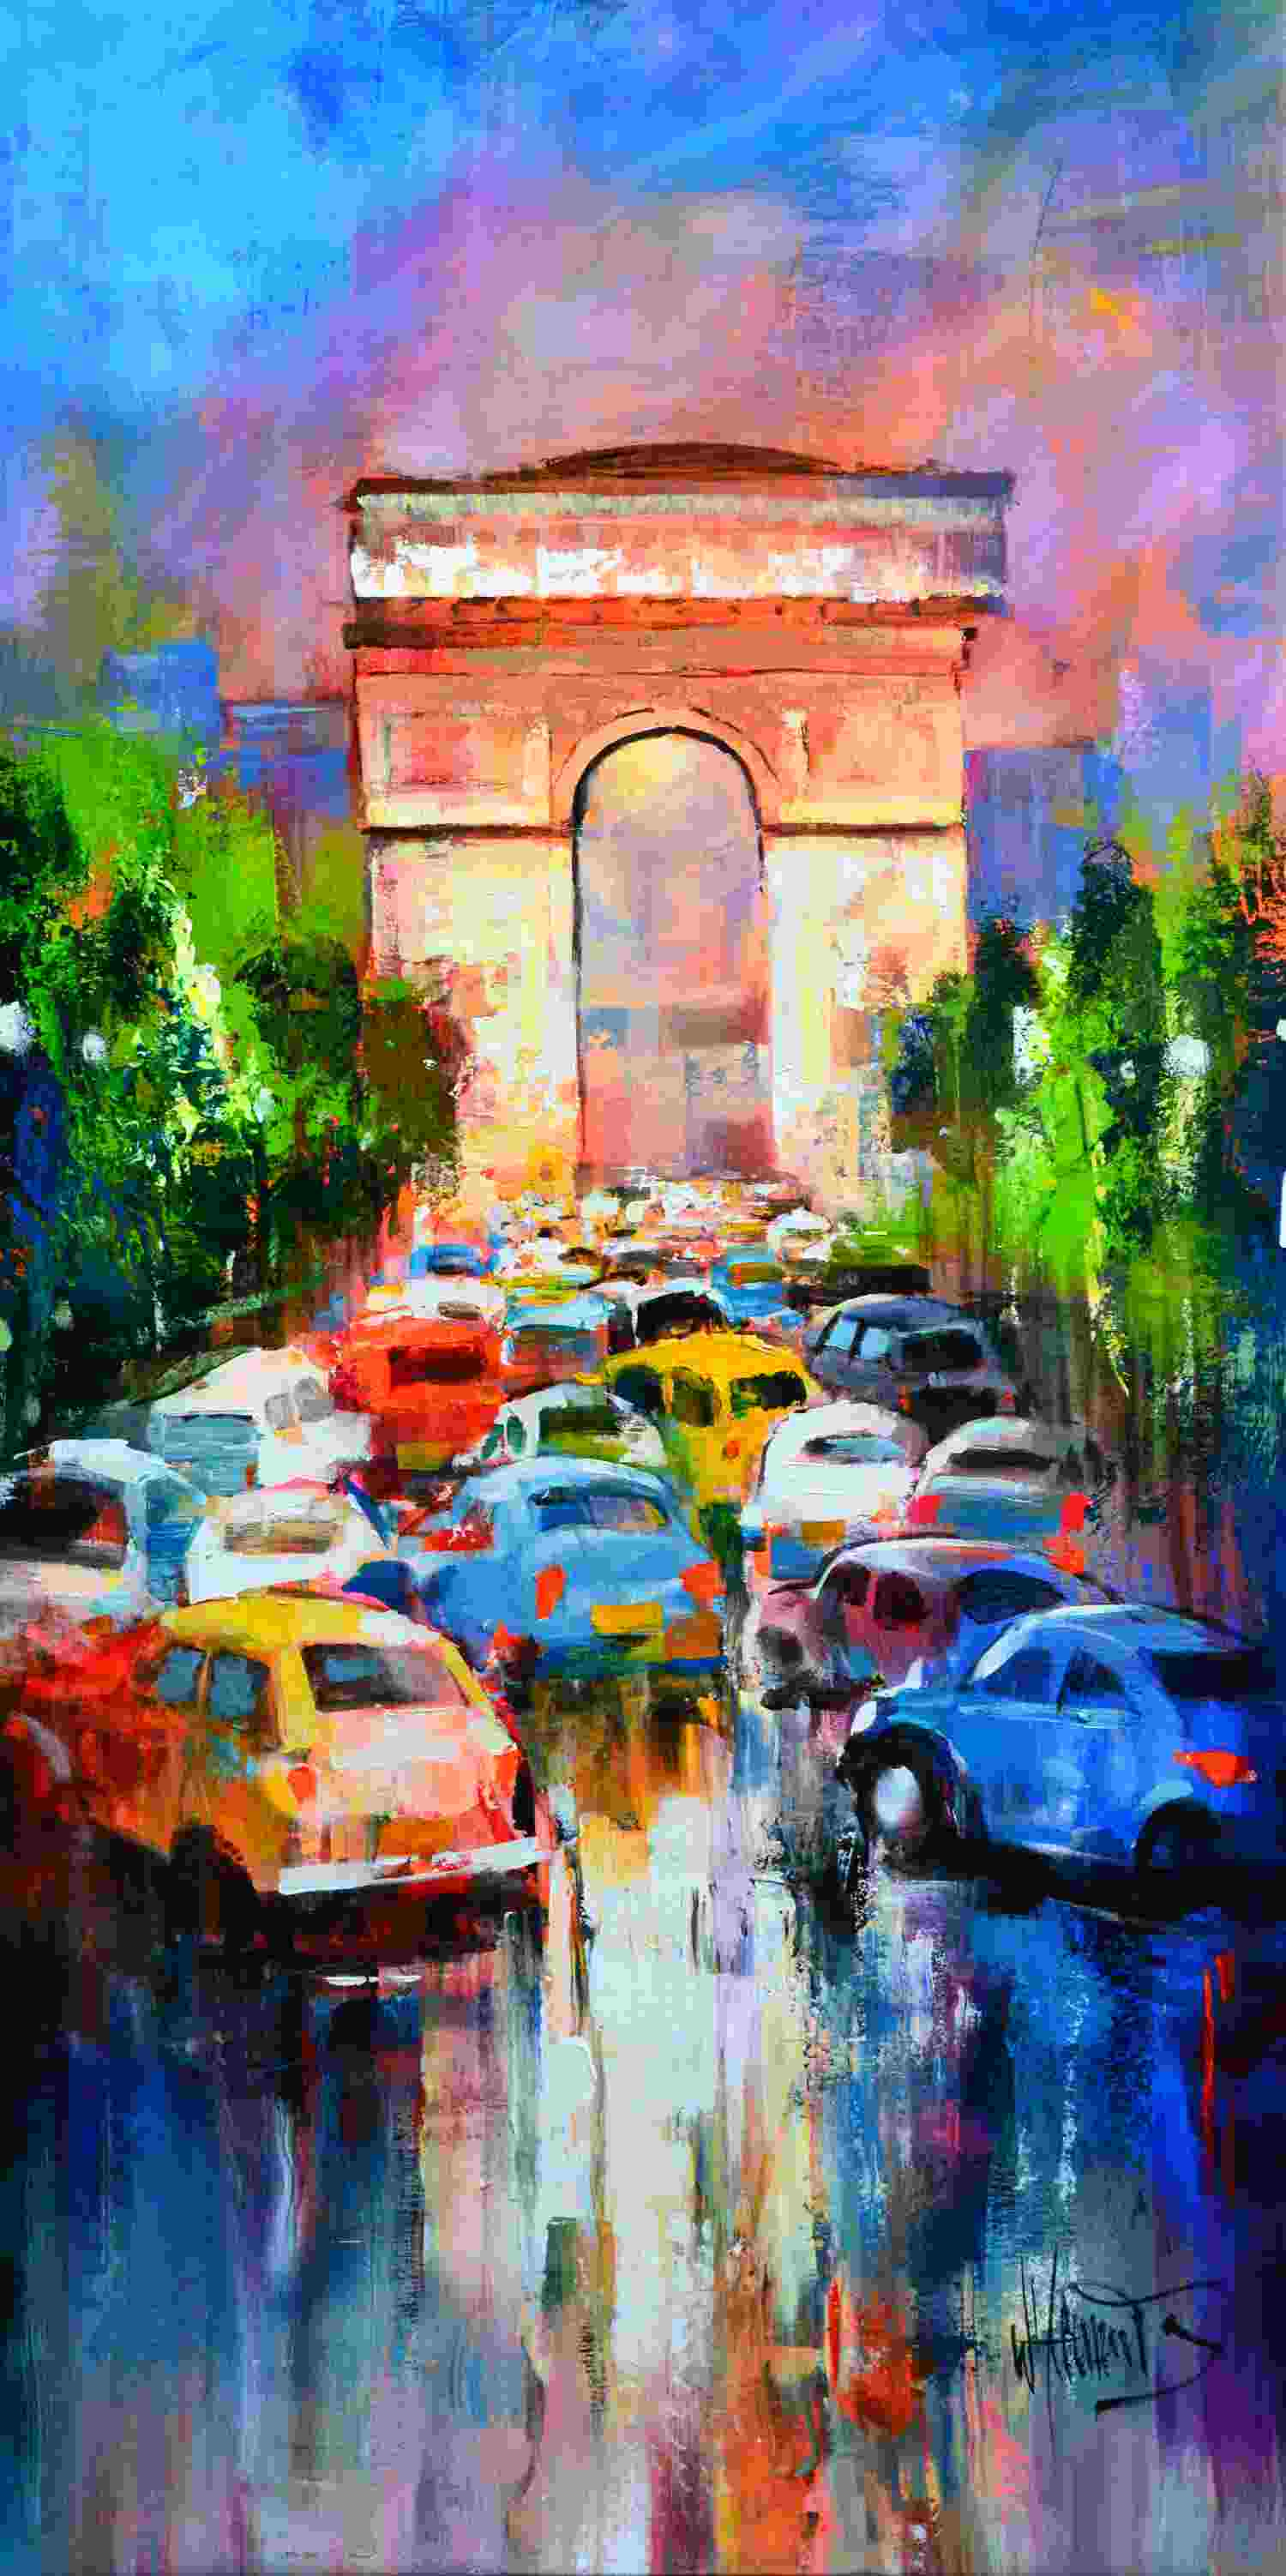 konfigurieren des Kunstwerks Rushhour in Paris von Haenraets Willem